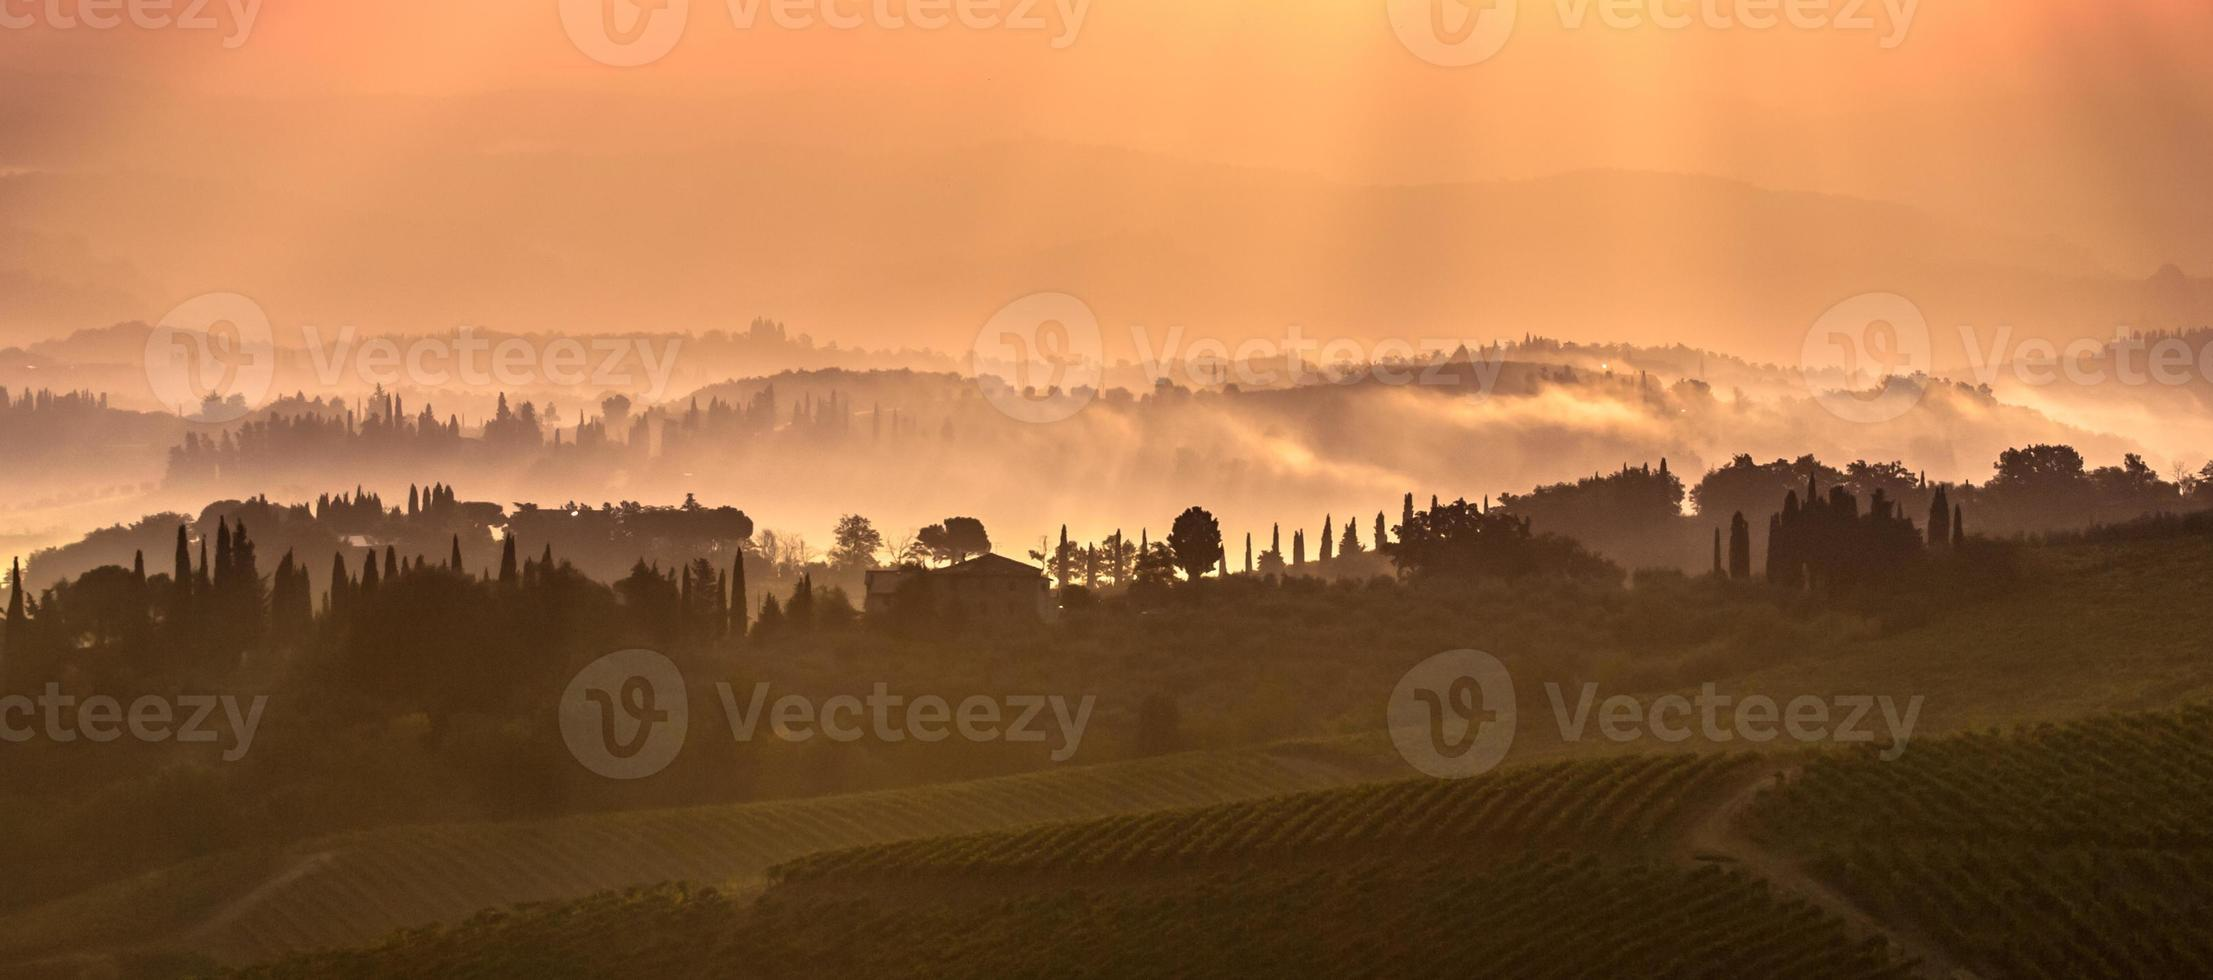 Tuscan Landscape in the morning photo